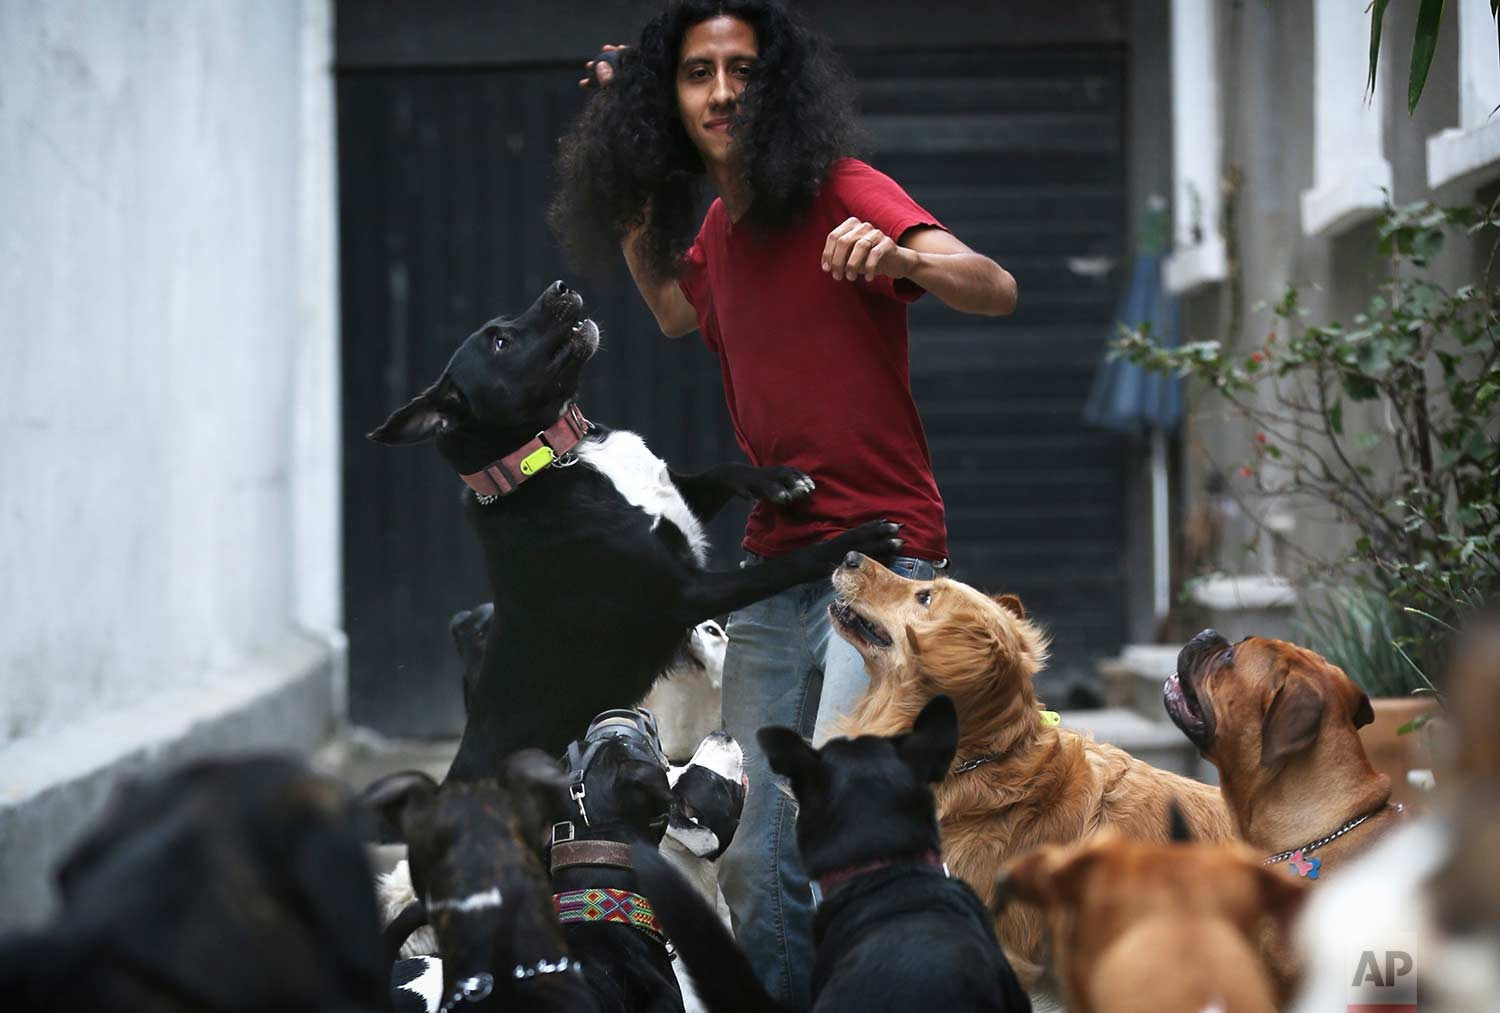 "In this Saturday, Dec. 23, 2017 photo, Jair plays with his dogs at their home and dog shelter in Mexico City. The shelter is run by Jair Benavides and his wife Miriam Gutierrez de Velasco, who go by their ""dog family"" nicknames of Jair Solcan and Miriam Luzcan, which respectively translates to ""Sundog"" and ""Lightdog"" in English. (AP Photo/Marco Ugarte)"